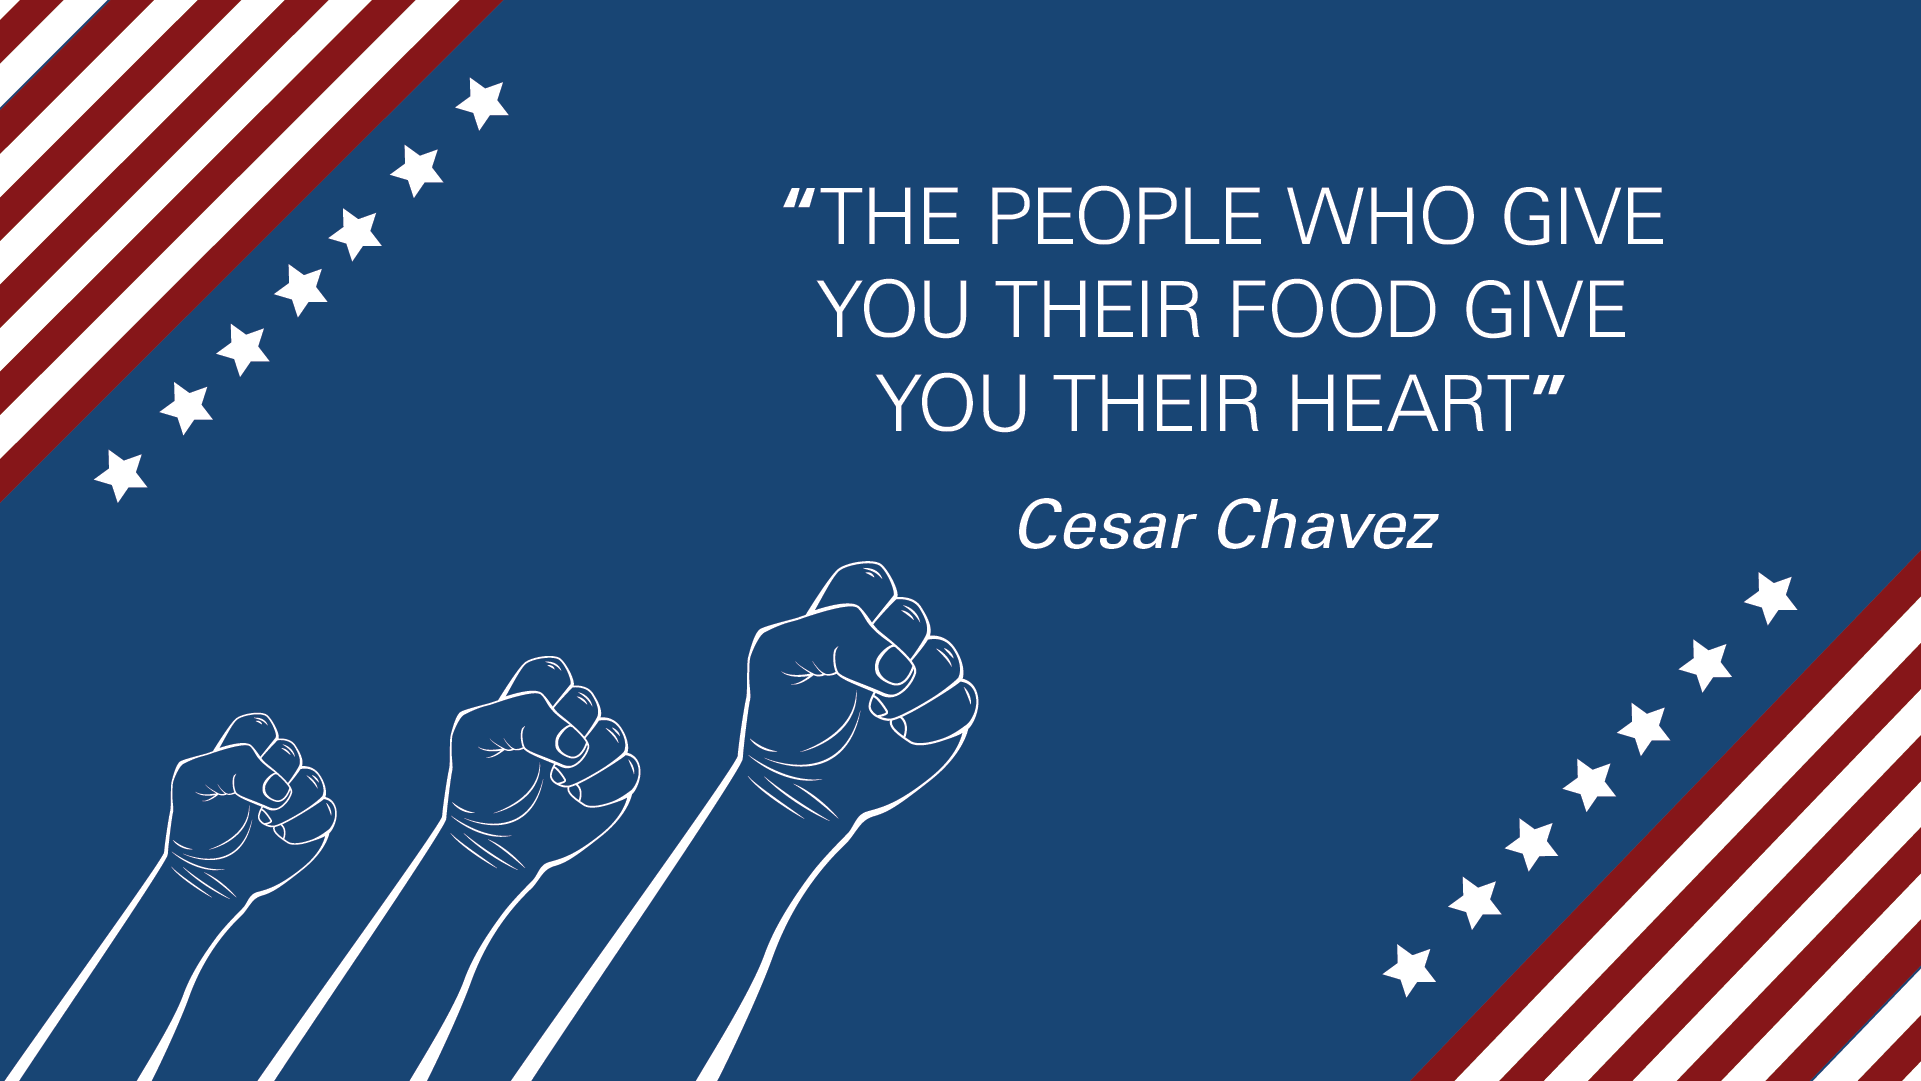 7 things you didn't know about César Chávez…